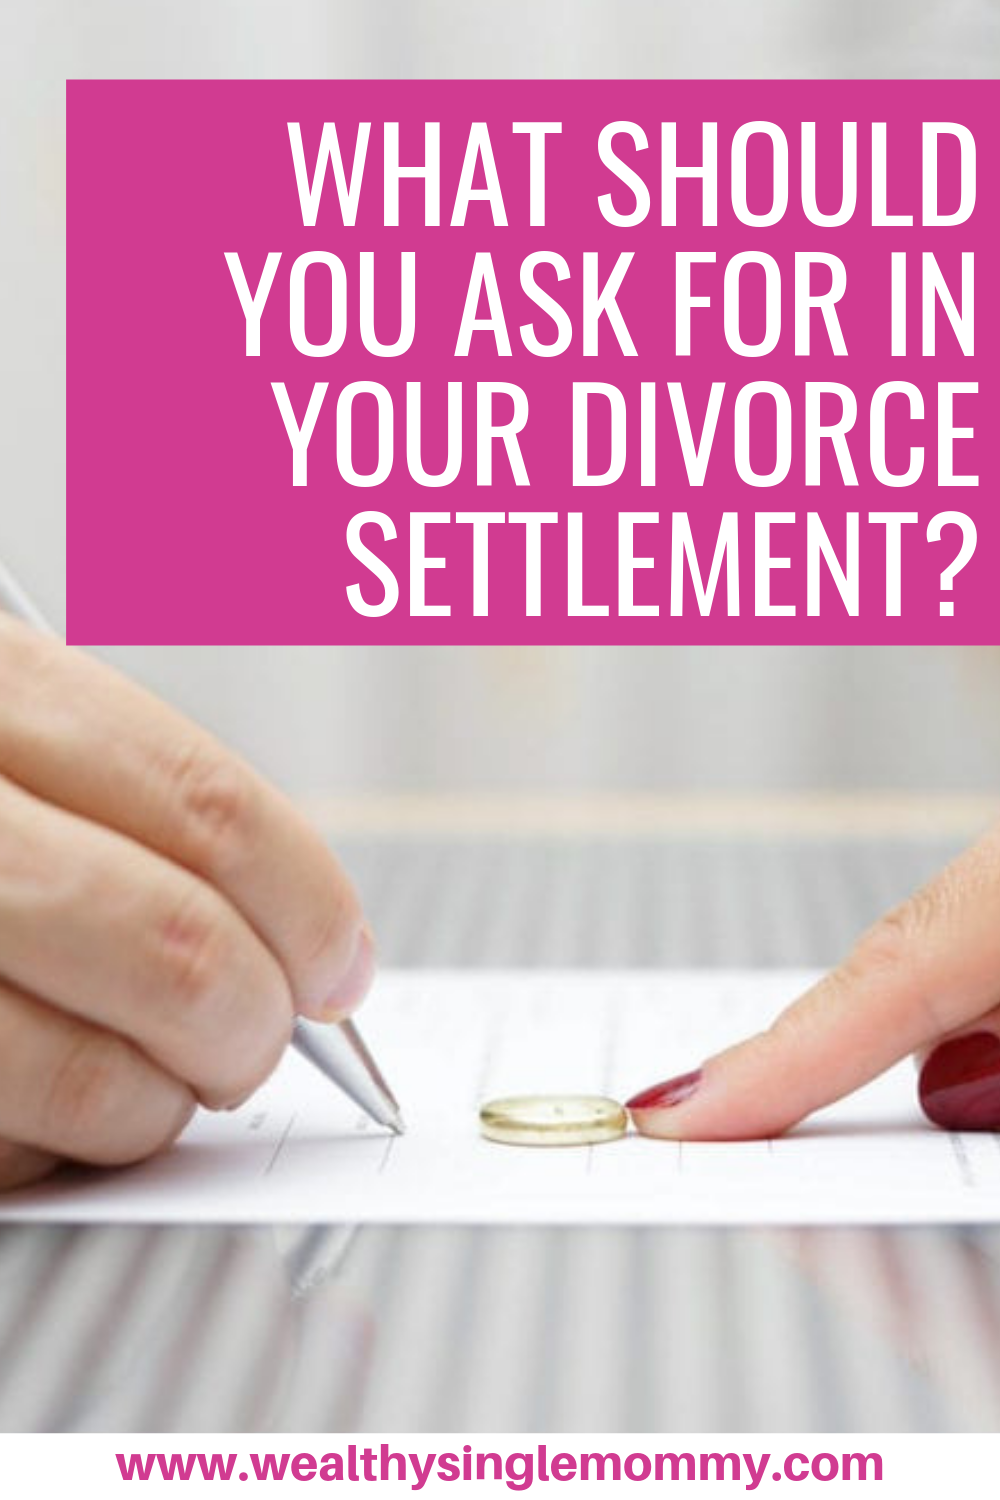 What should you ask for in your divorce settlement?